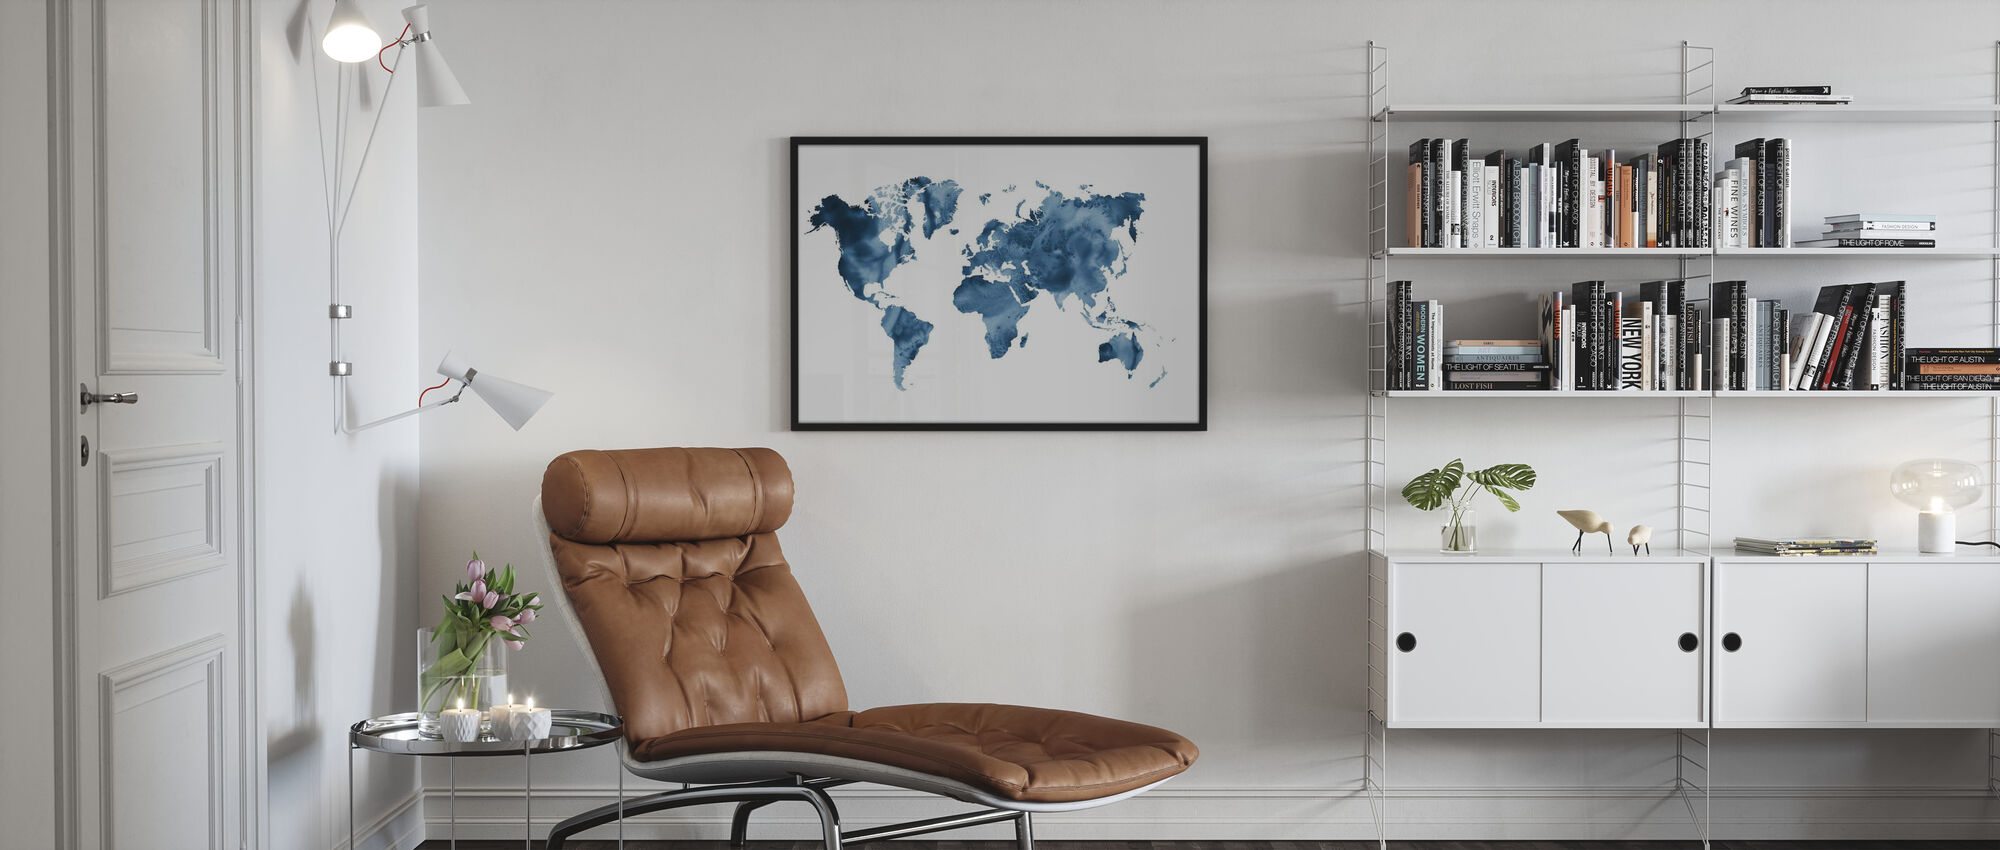 Watercolor World Navy Blue - Poster - Living Room